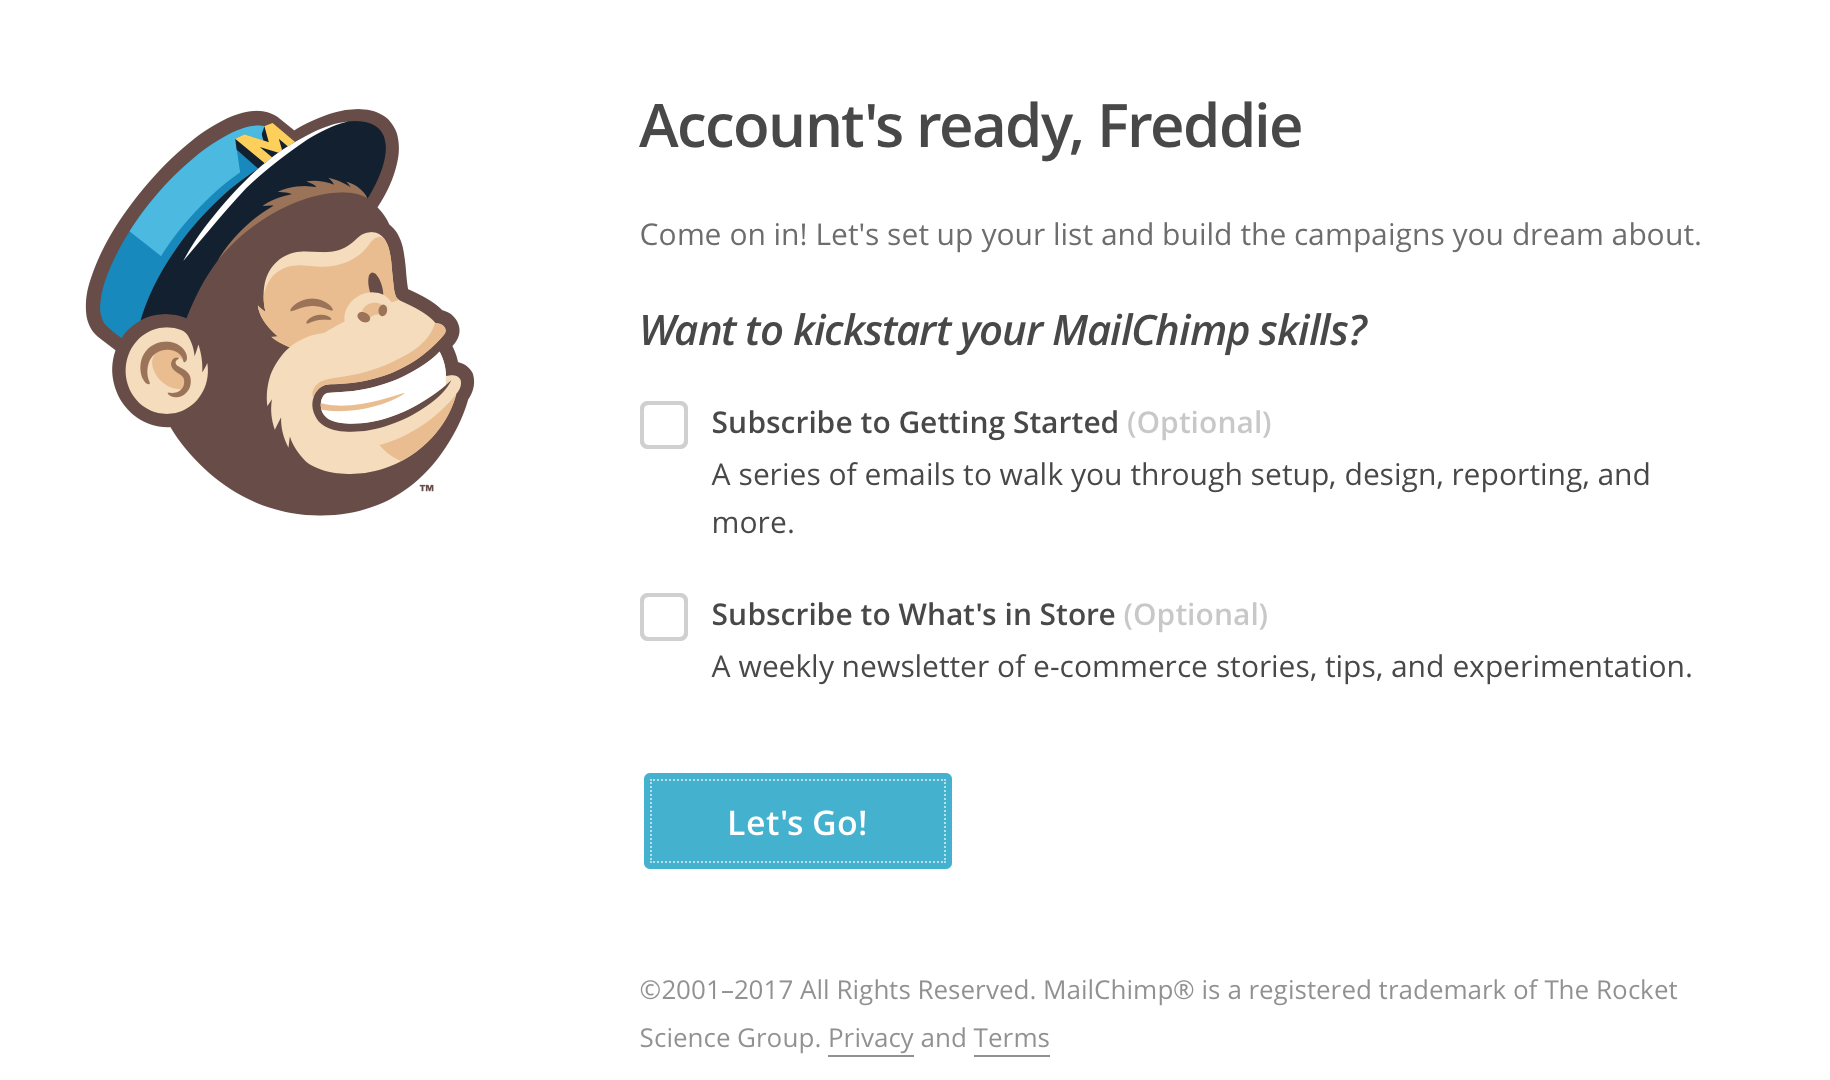 Mailchimp Newsletter Account fertig eingerichtet